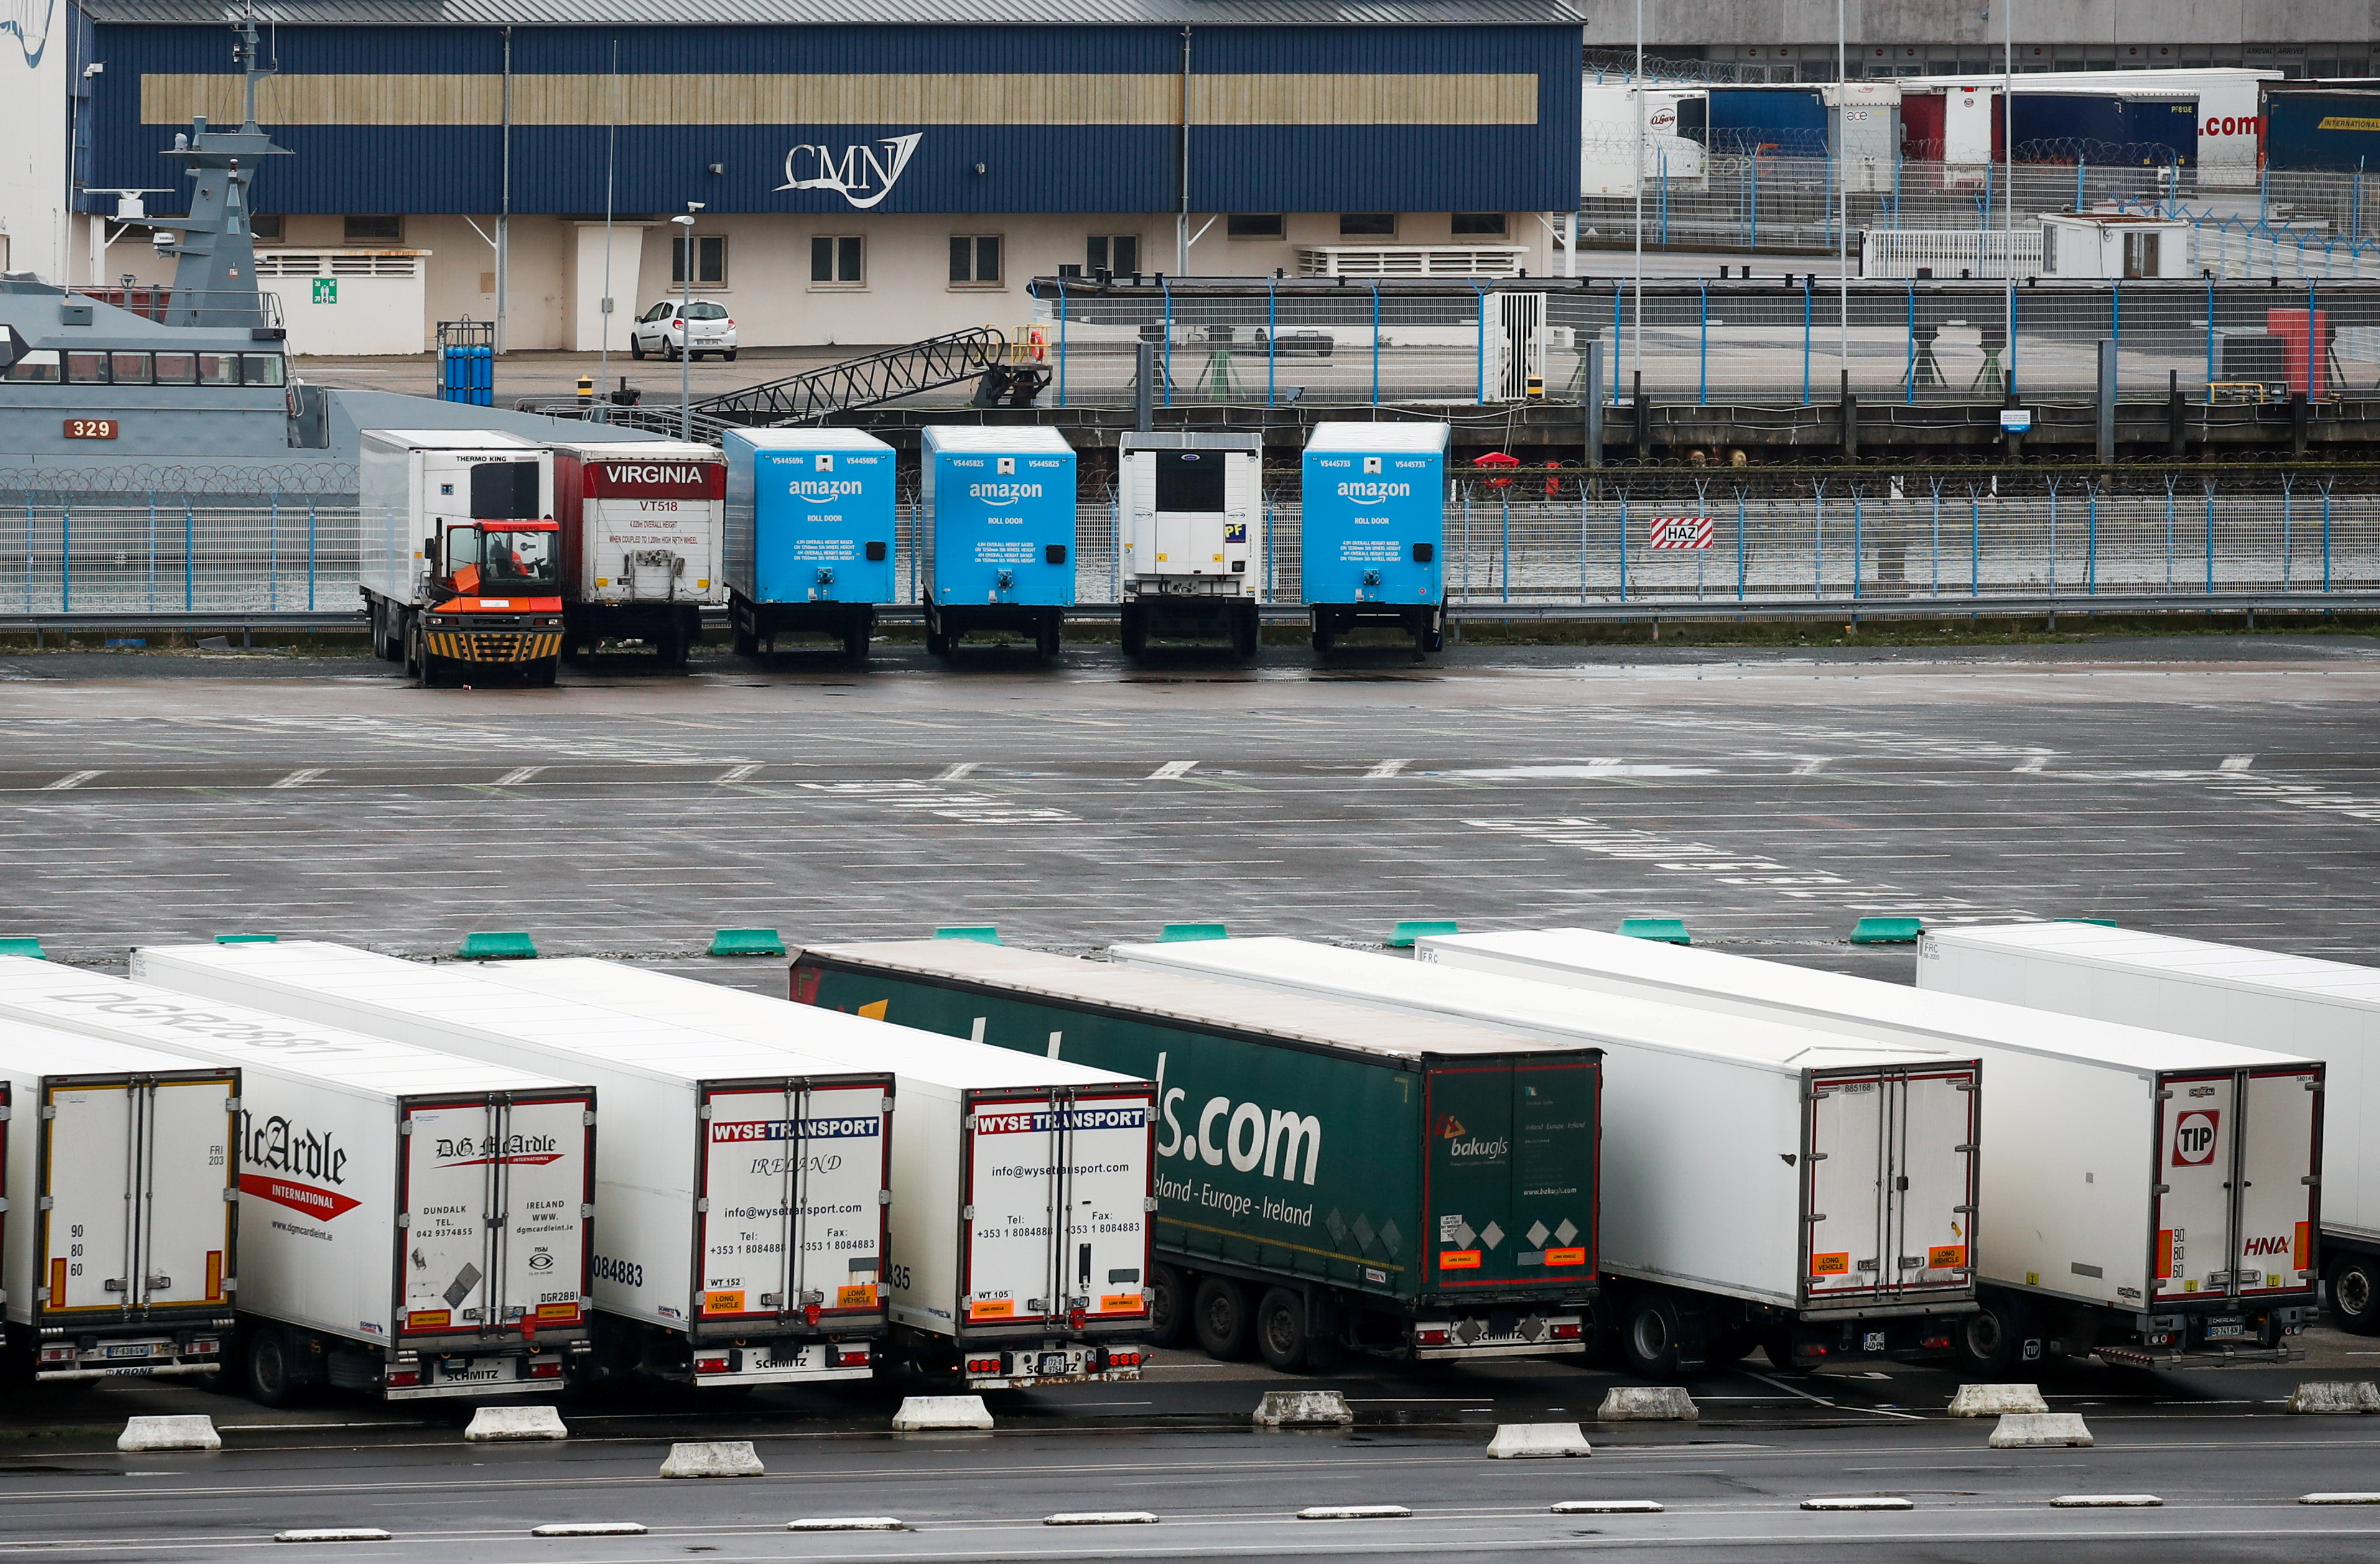 Amazon trailer trucks are seen at Cherbourg Harbour, France January 21, 2021. Brexit delays and customs checks have led to a surge in demand to ship goods in and out of Ireland direct to European ports like Cherbourg in France. REUTERS/Gonzalo Fuentes